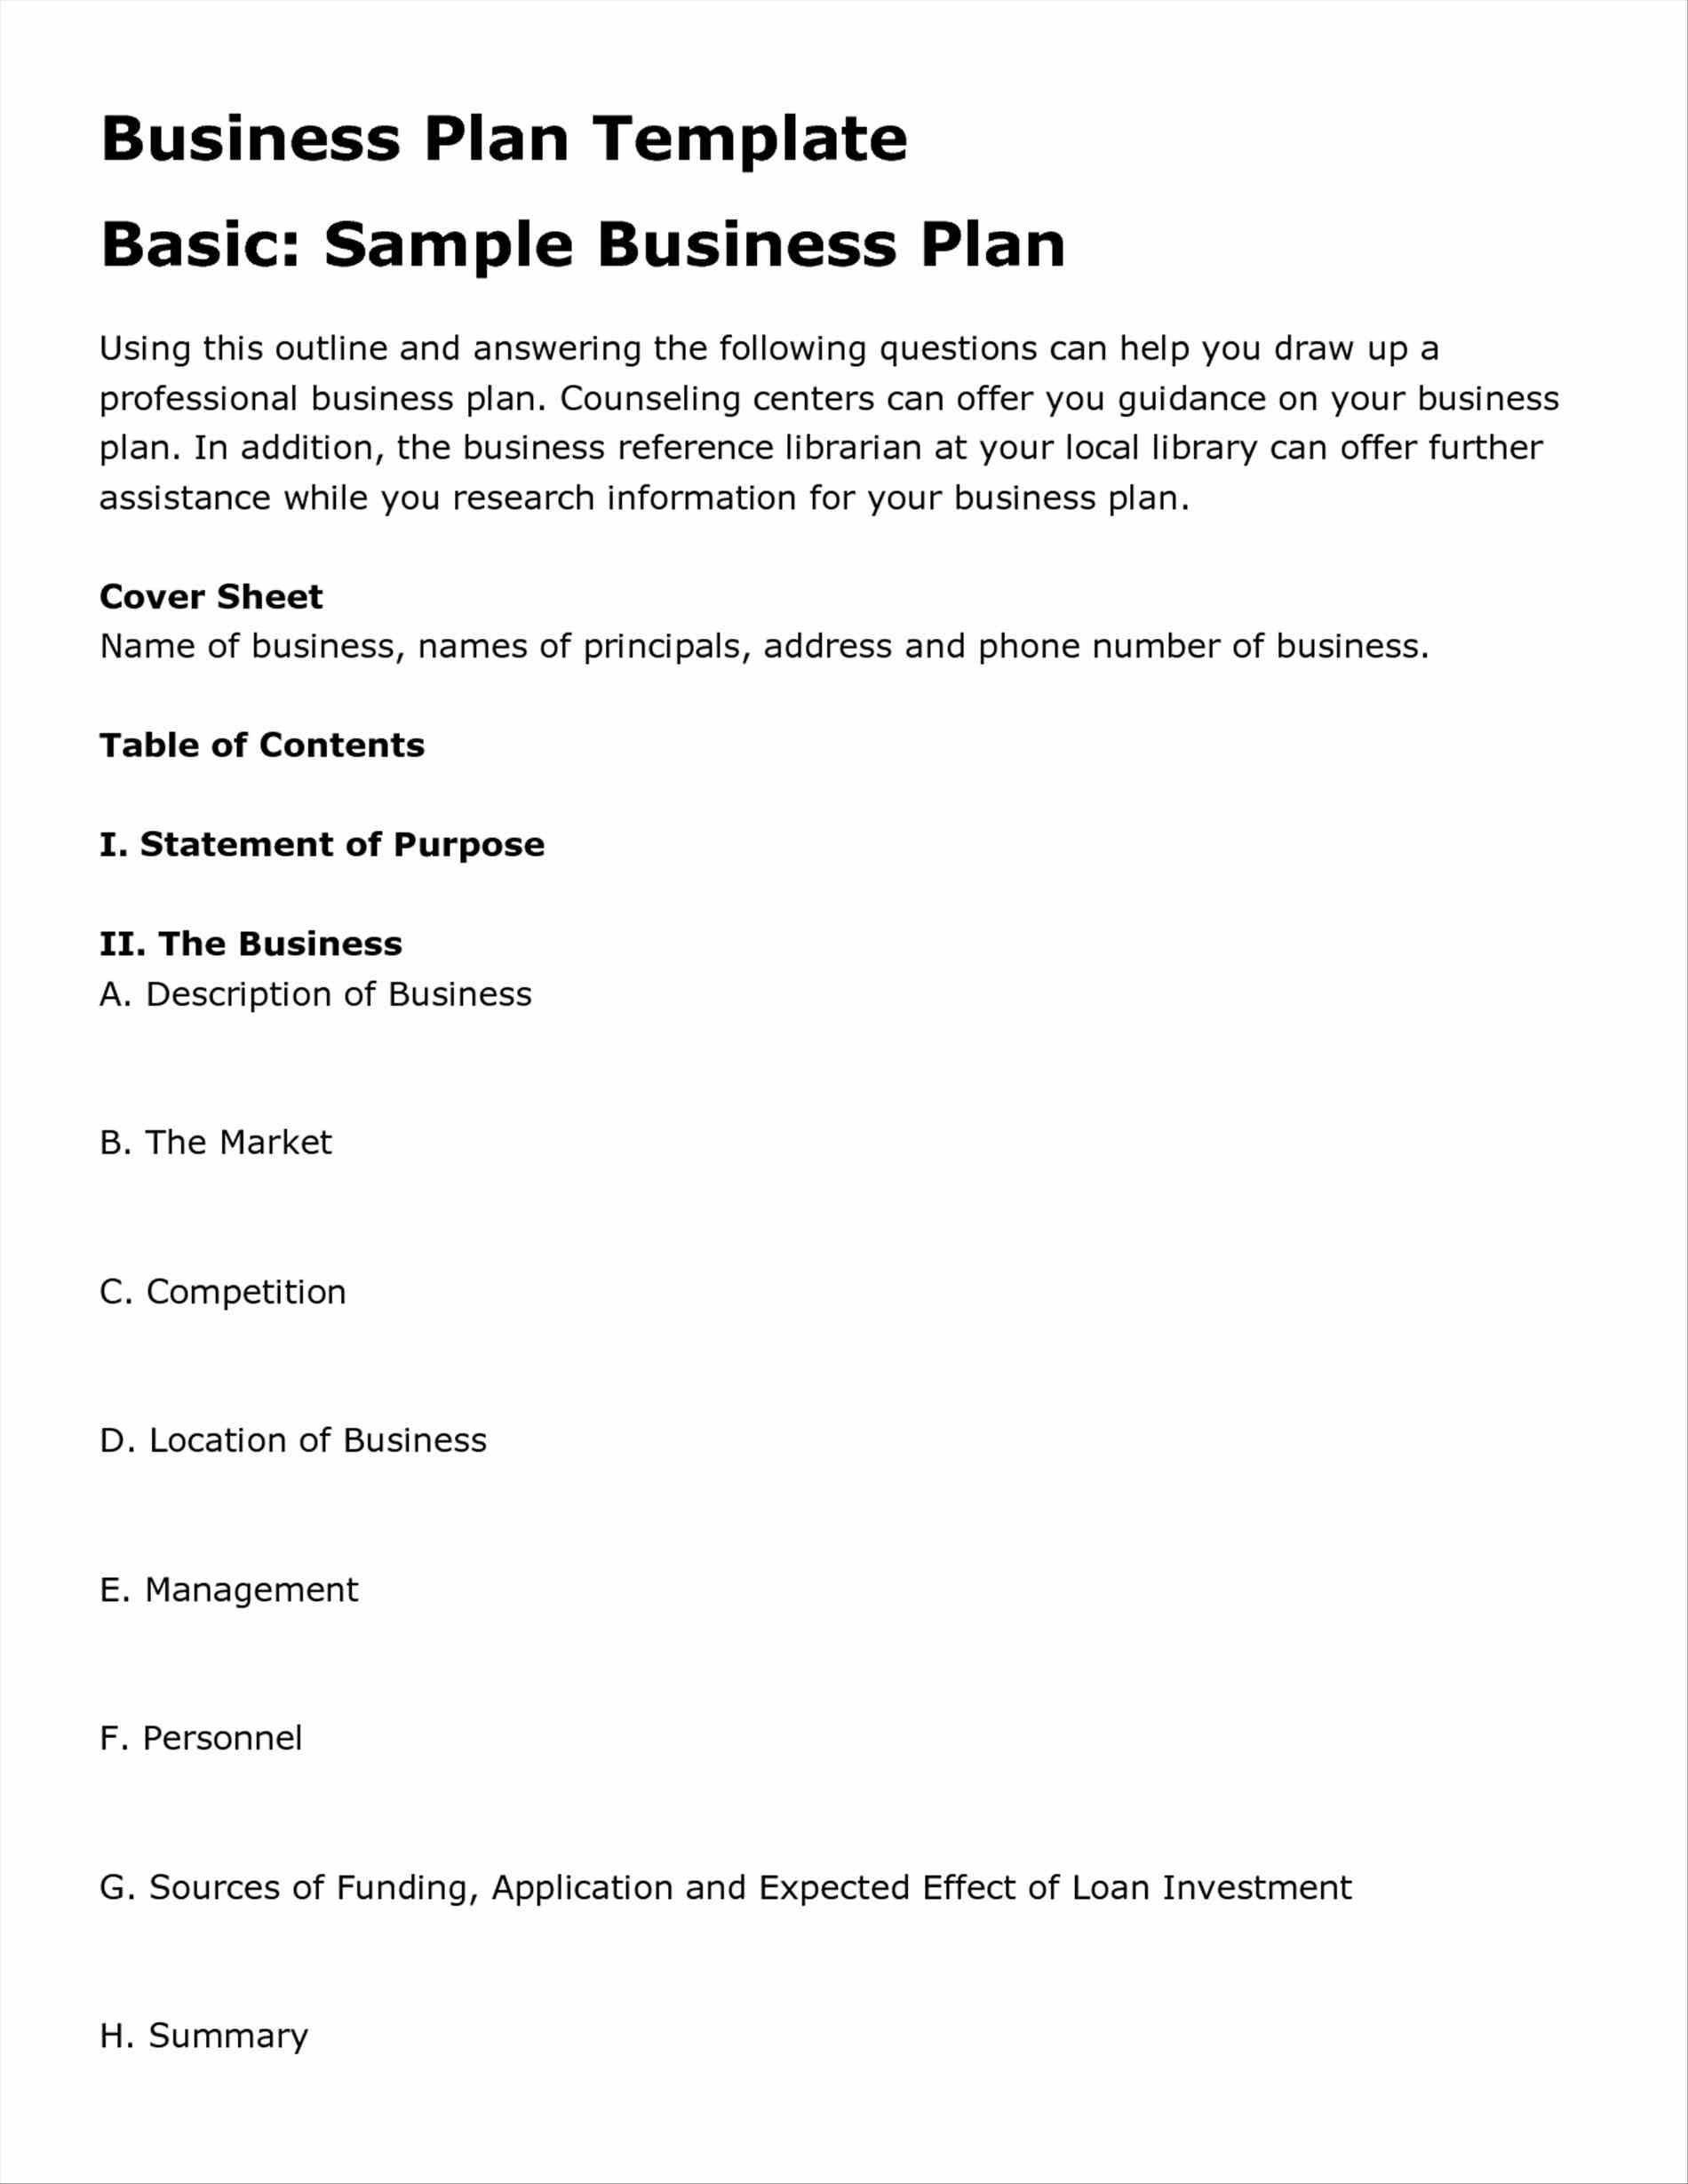 Business plan template restaurant templates in word excel pdf free business plan template restaurant templates in word excel pdf free cafe business plan template restaurant business plan templates in word excel cheaphphosting